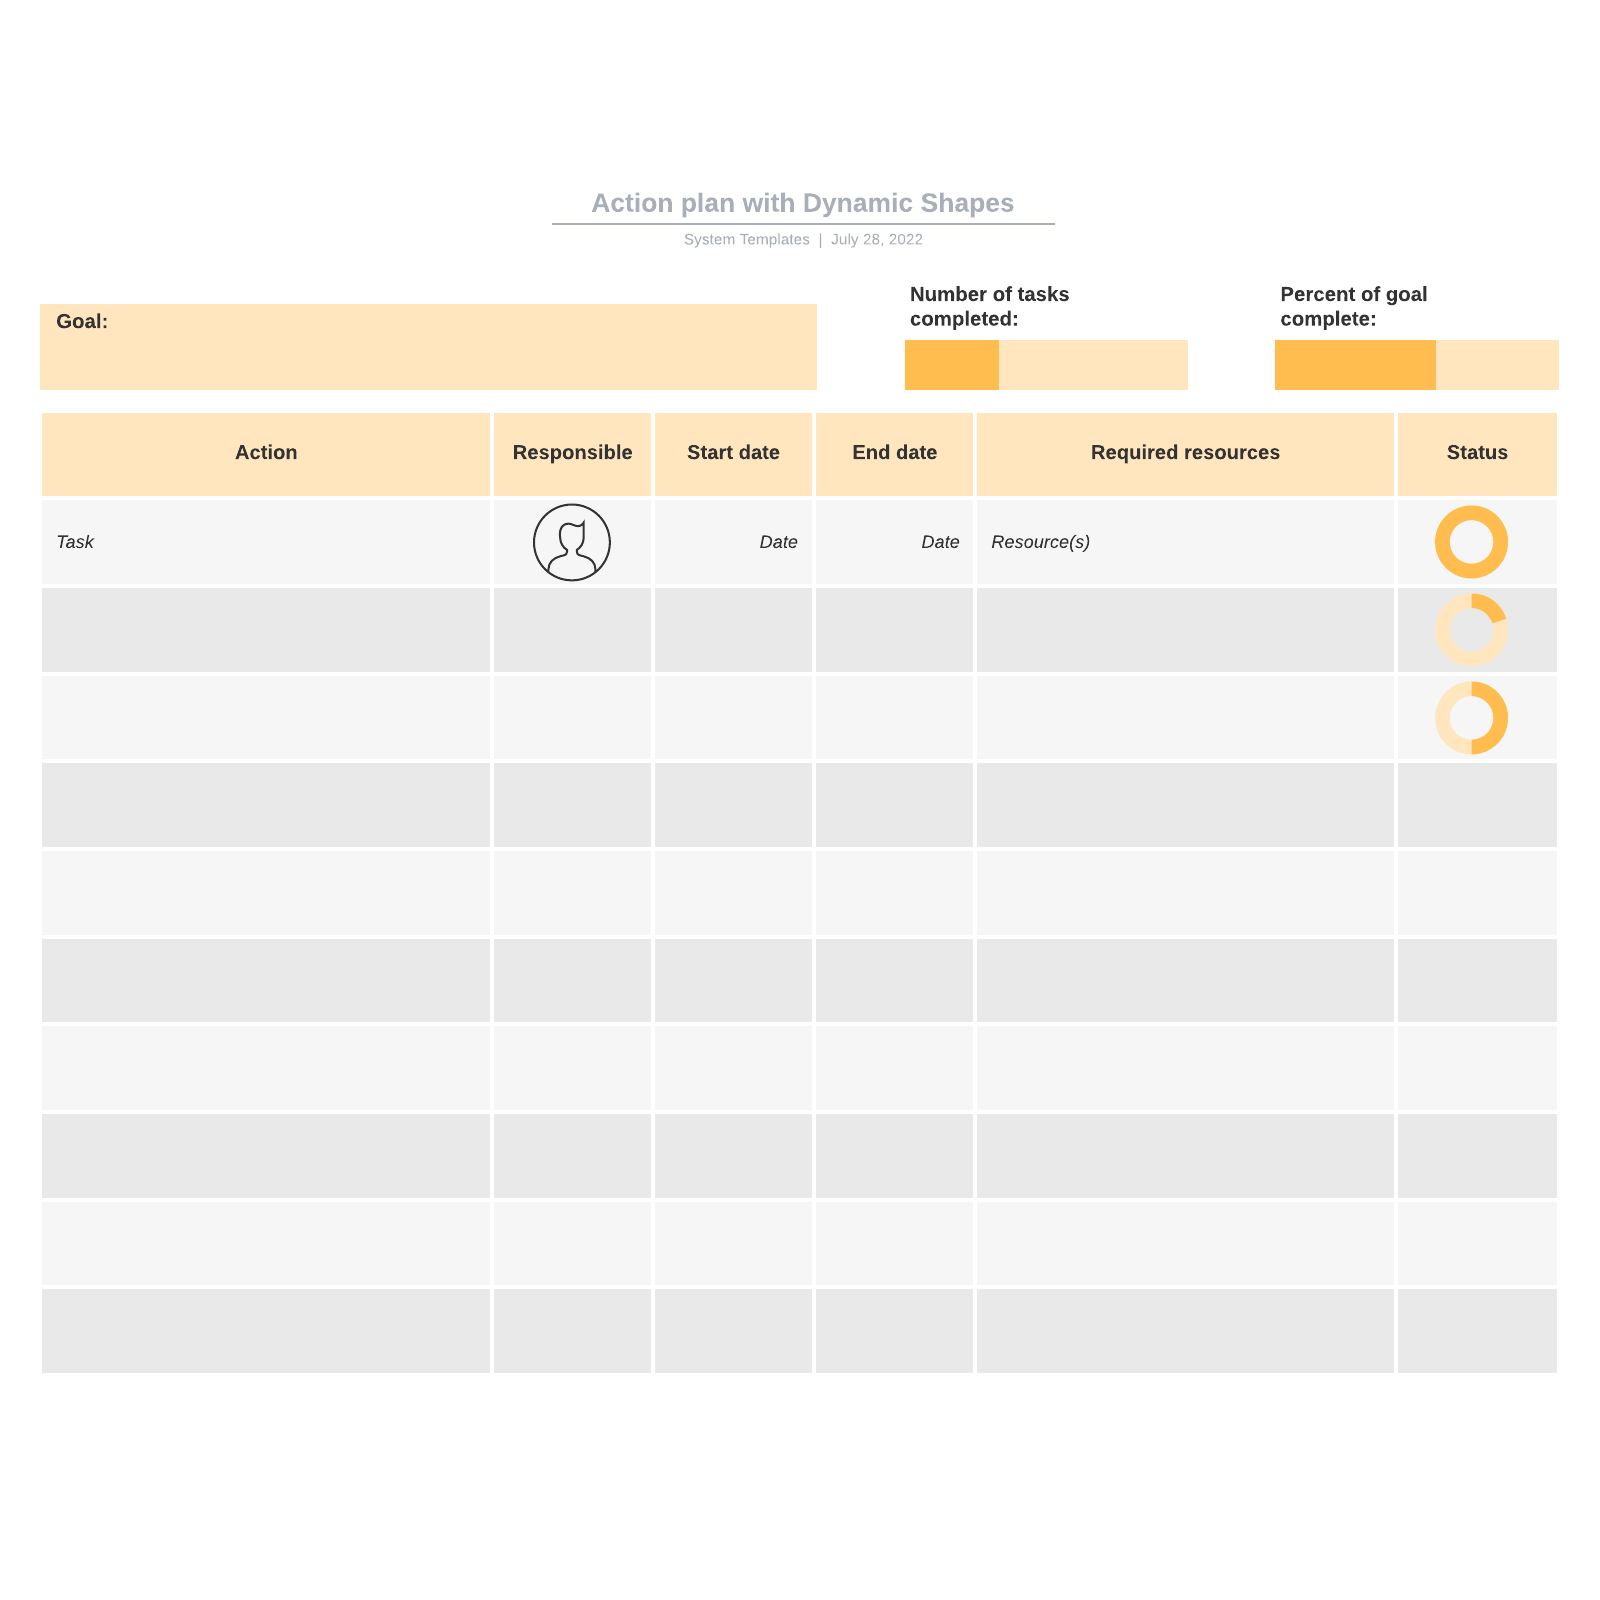 Action plan with Dynamic Shapes